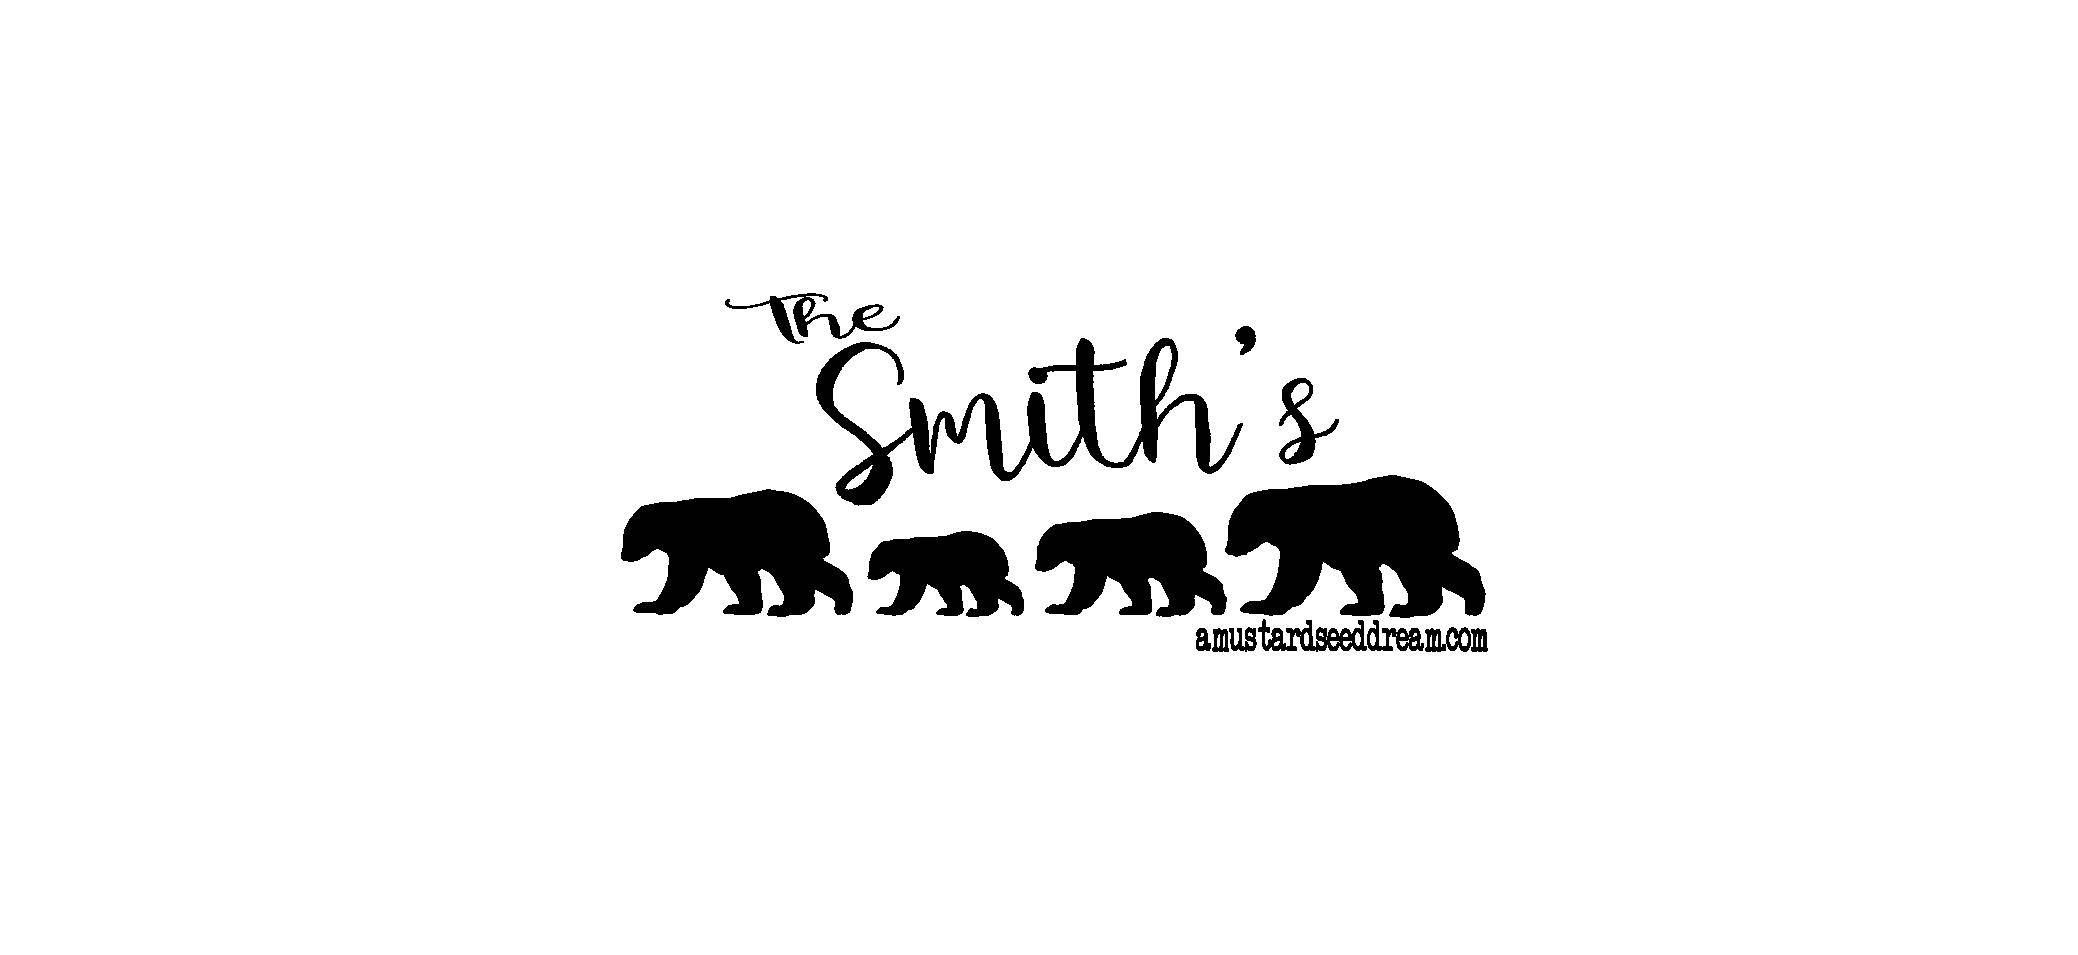 Personalized mailbox decal with bears vinyl wall art graphics